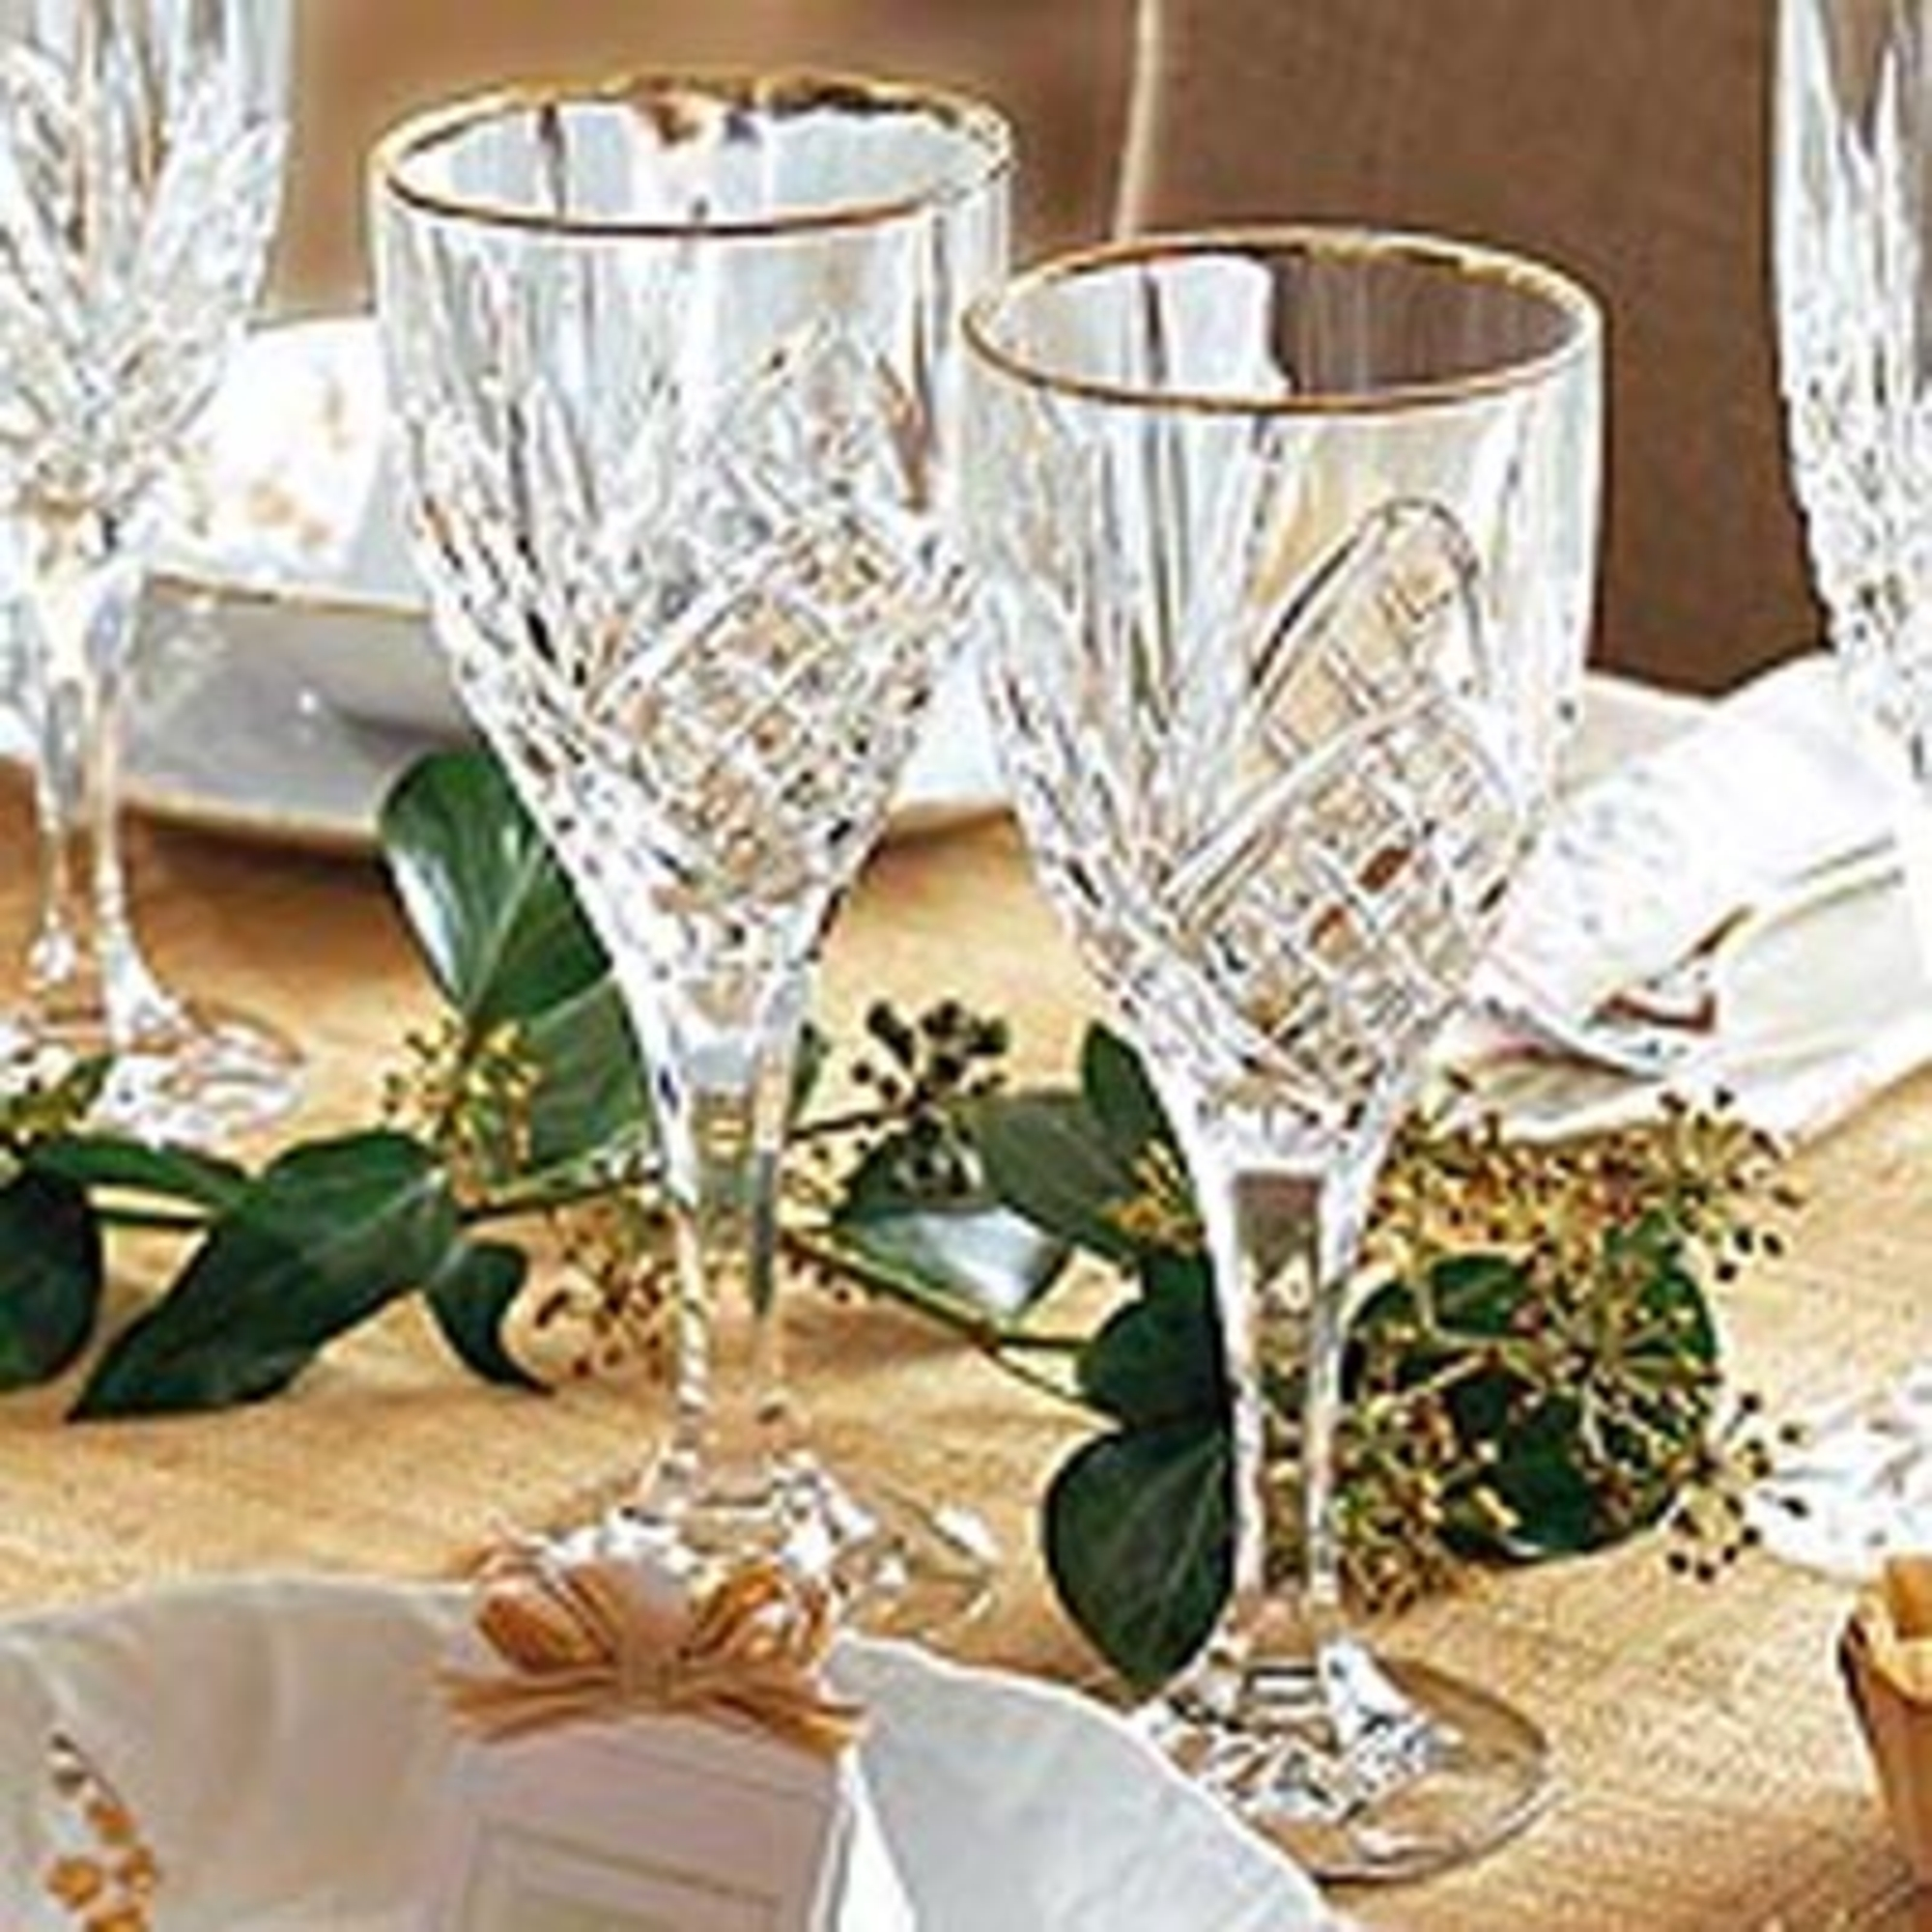 service de verres cristal 50 pi ces chamberlain avec filet dor anniversaire 40 ans. Black Bedroom Furniture Sets. Home Design Ideas